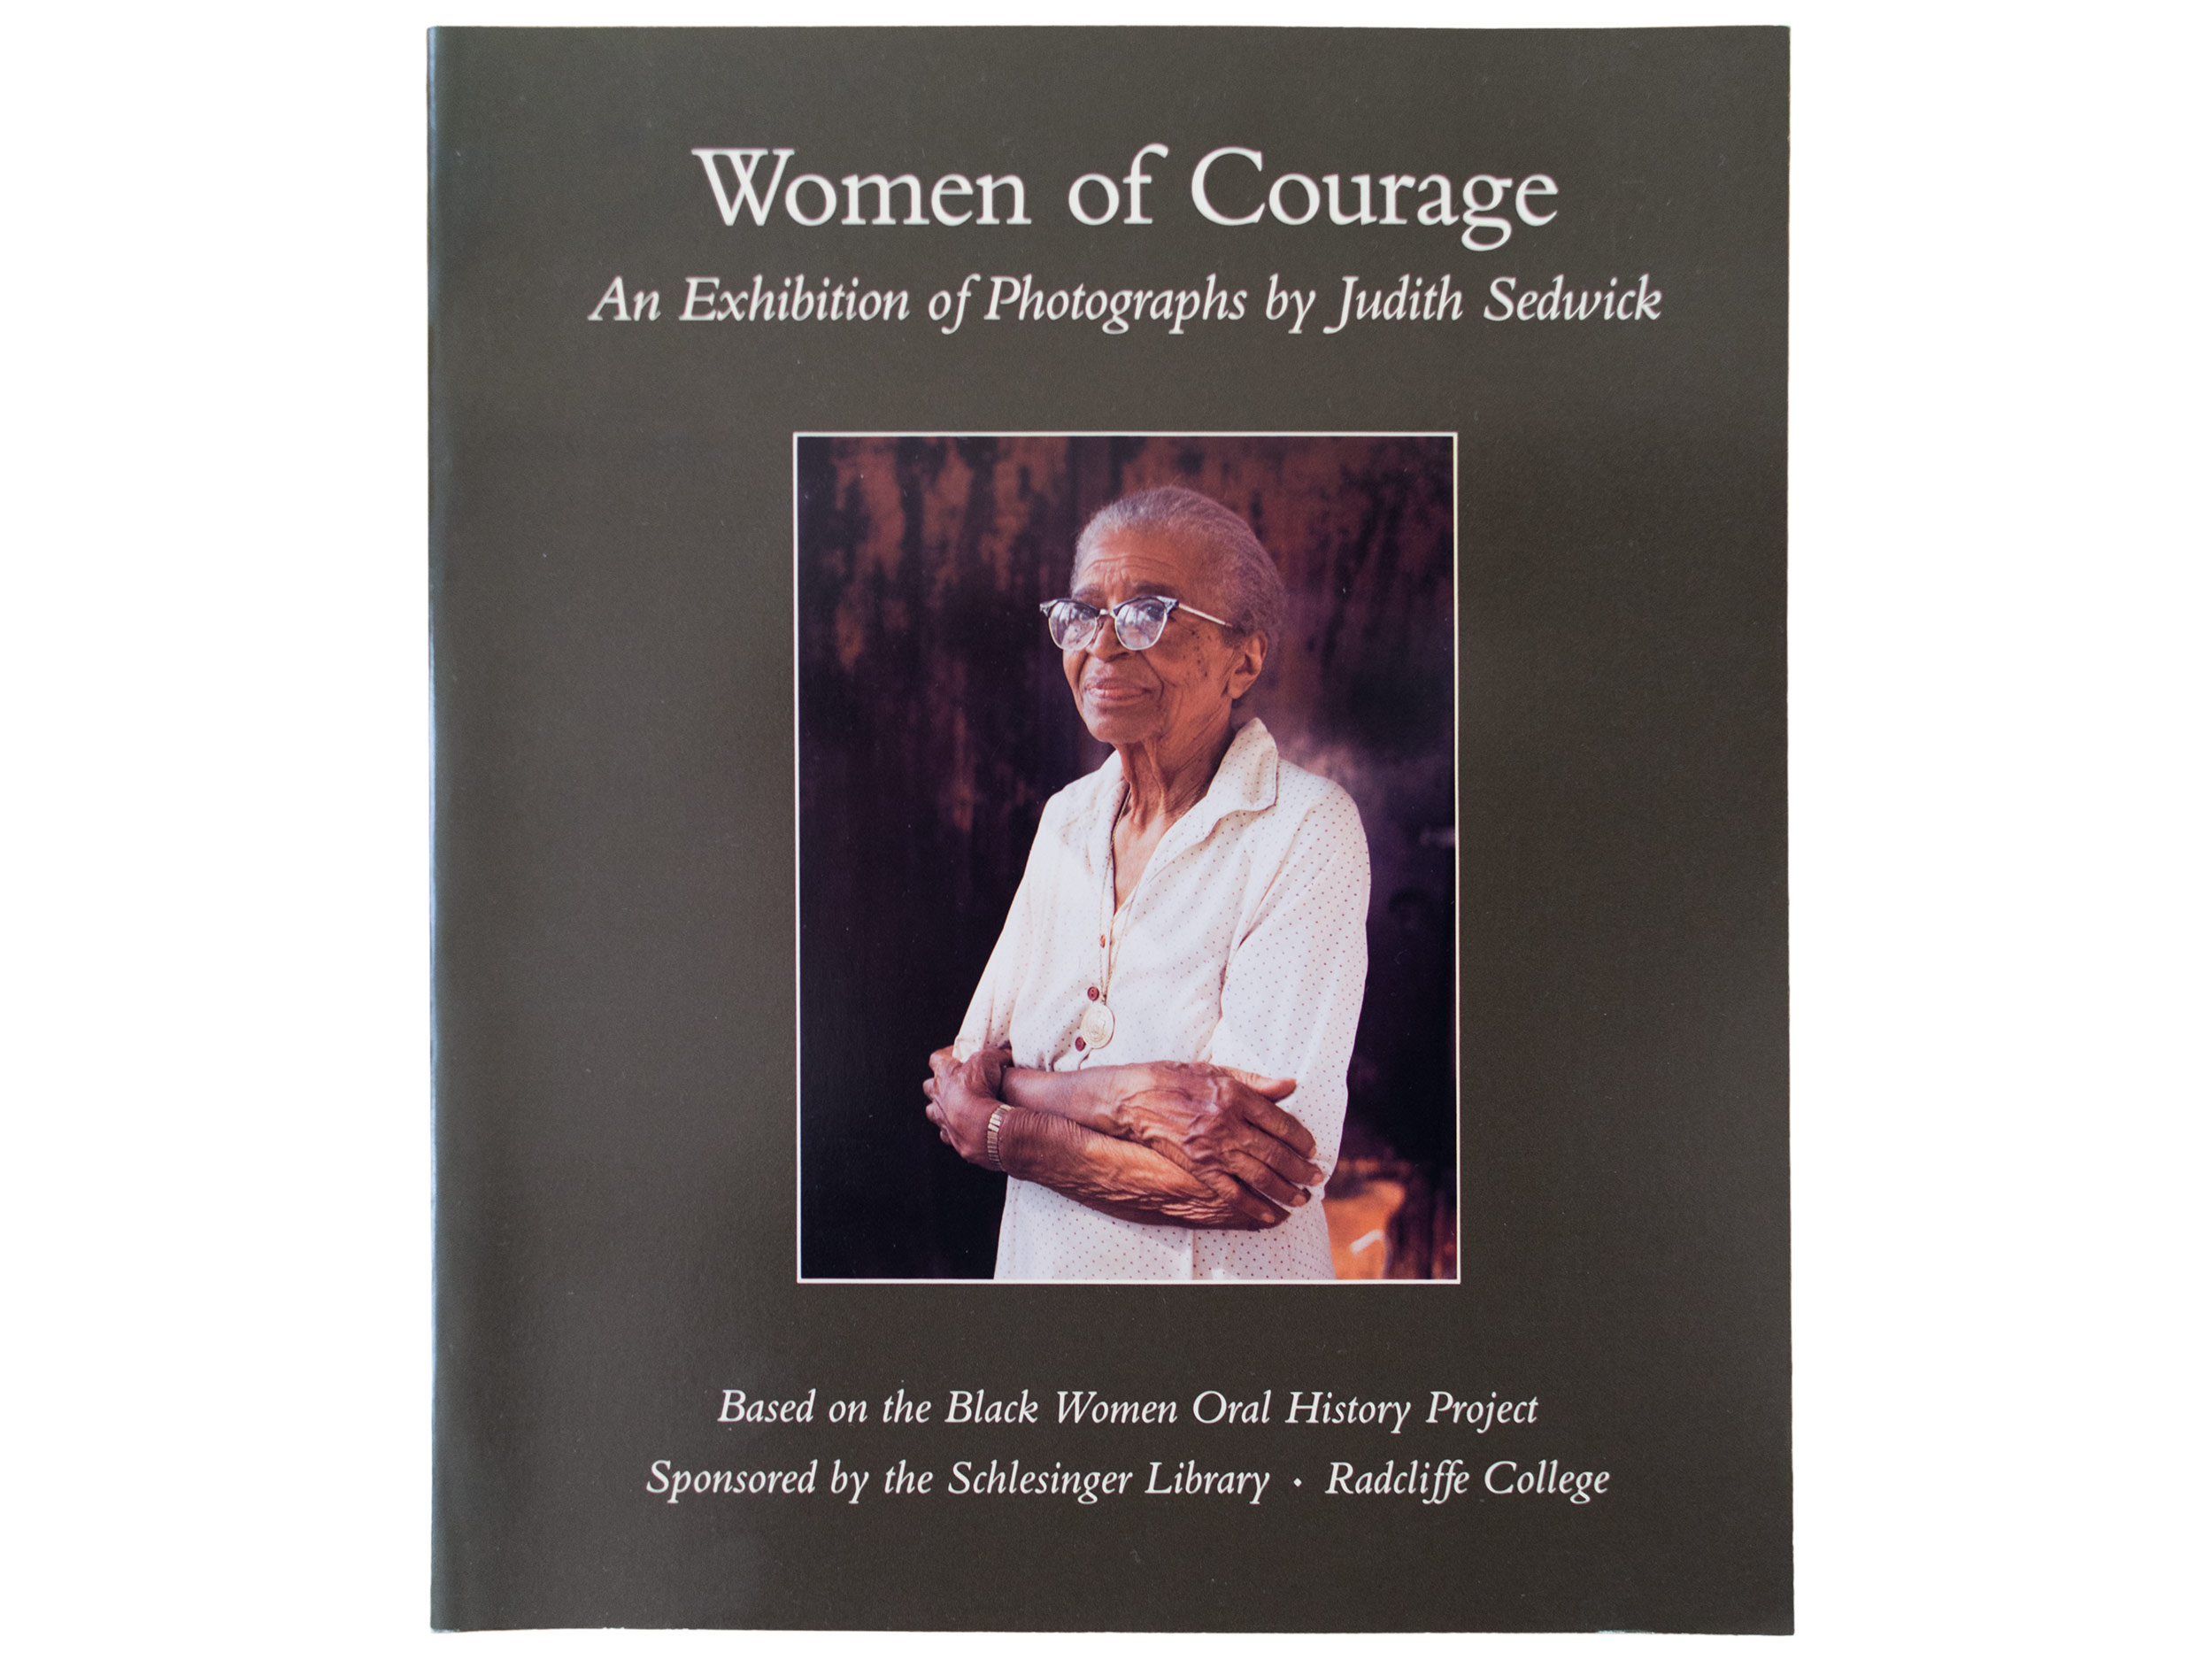 Women of Courage portraits, 1981